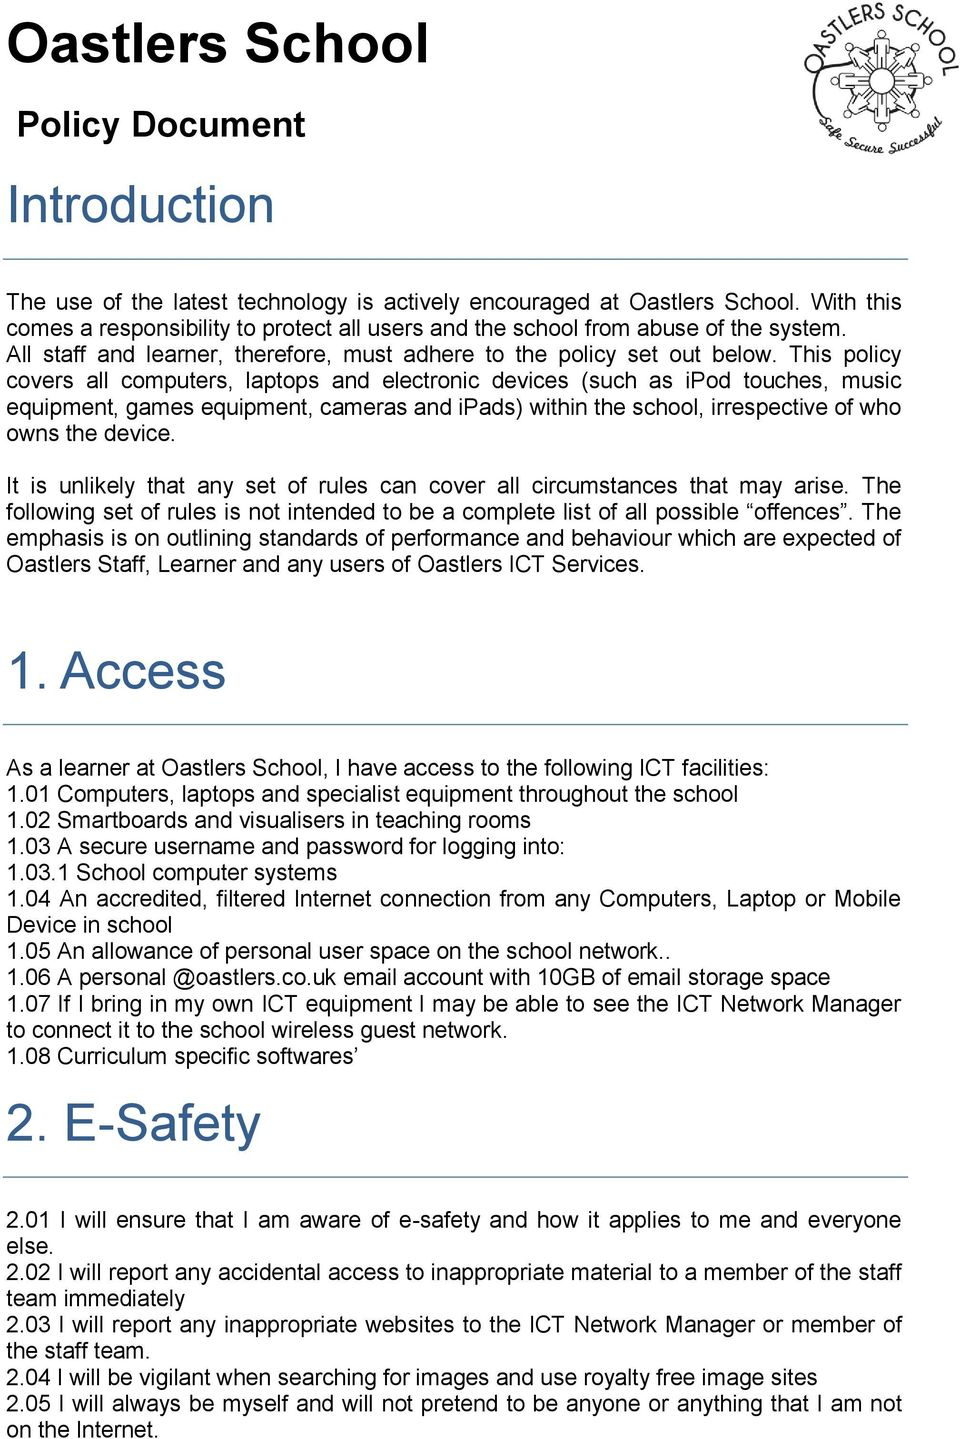 This policy covers all computers, laptops and electronic devices (such as ipod touches, music equipment, games equipment, cameras and ipads) within the school, irrespective of who owns the device.